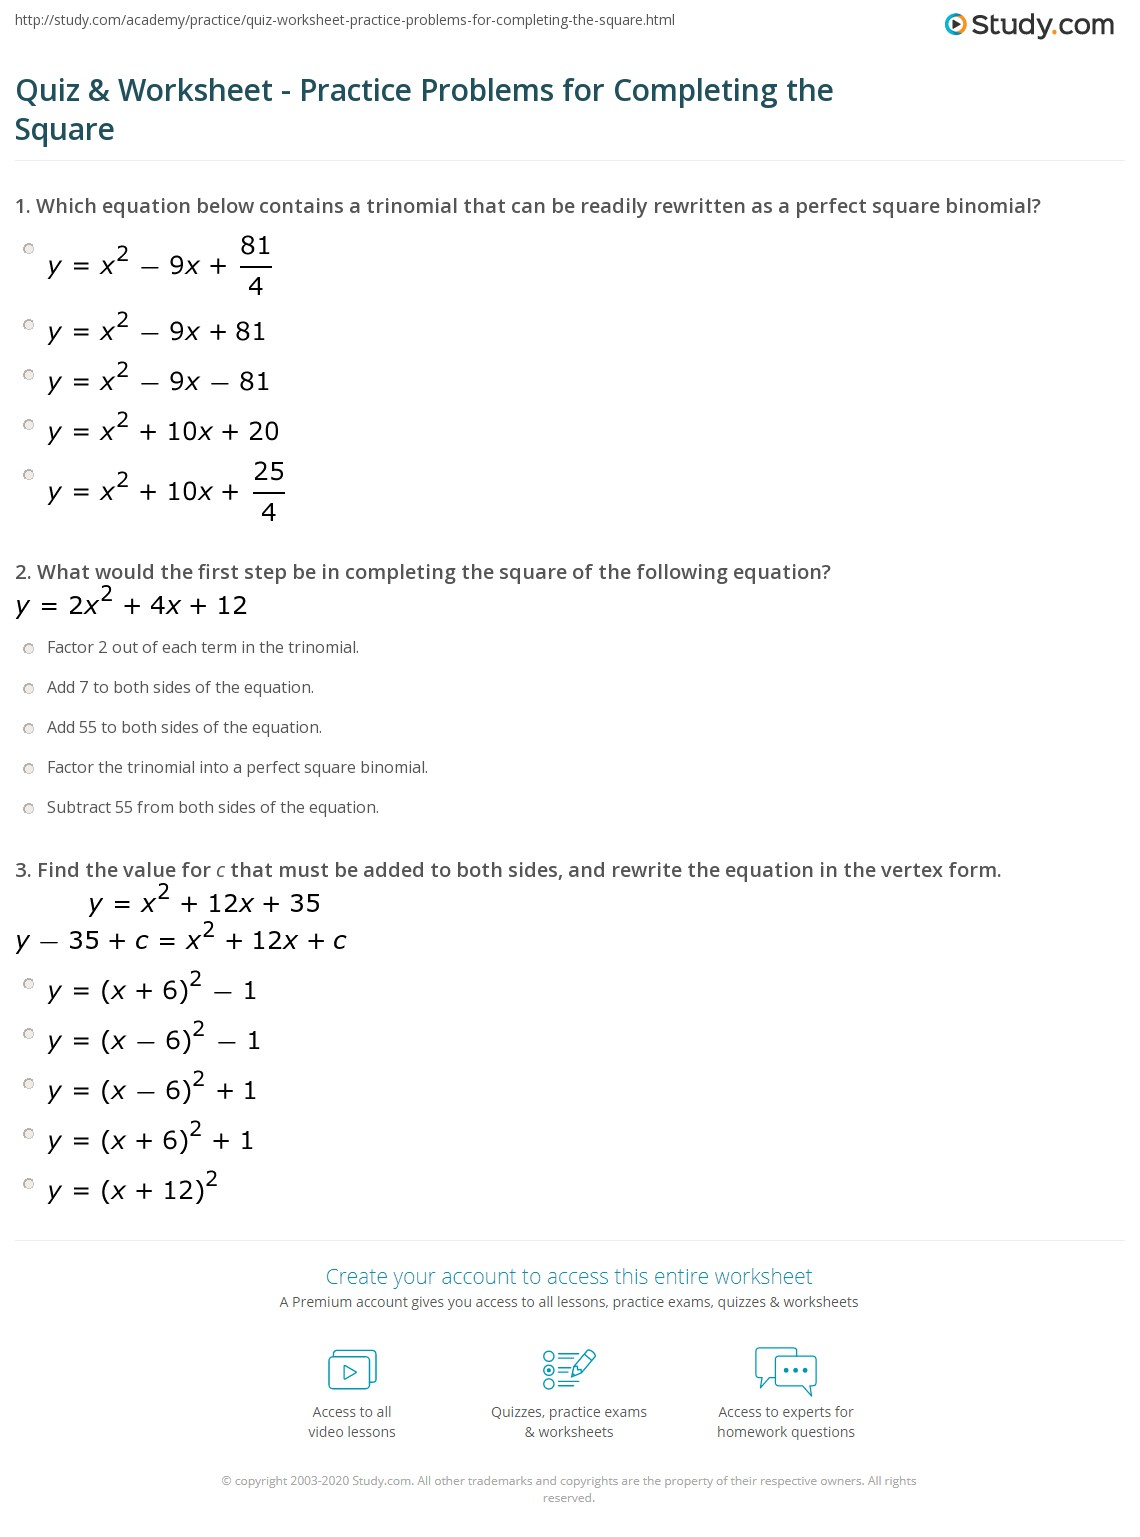 Quiz & Worksheet - Practice Problems for Completing the Square ...